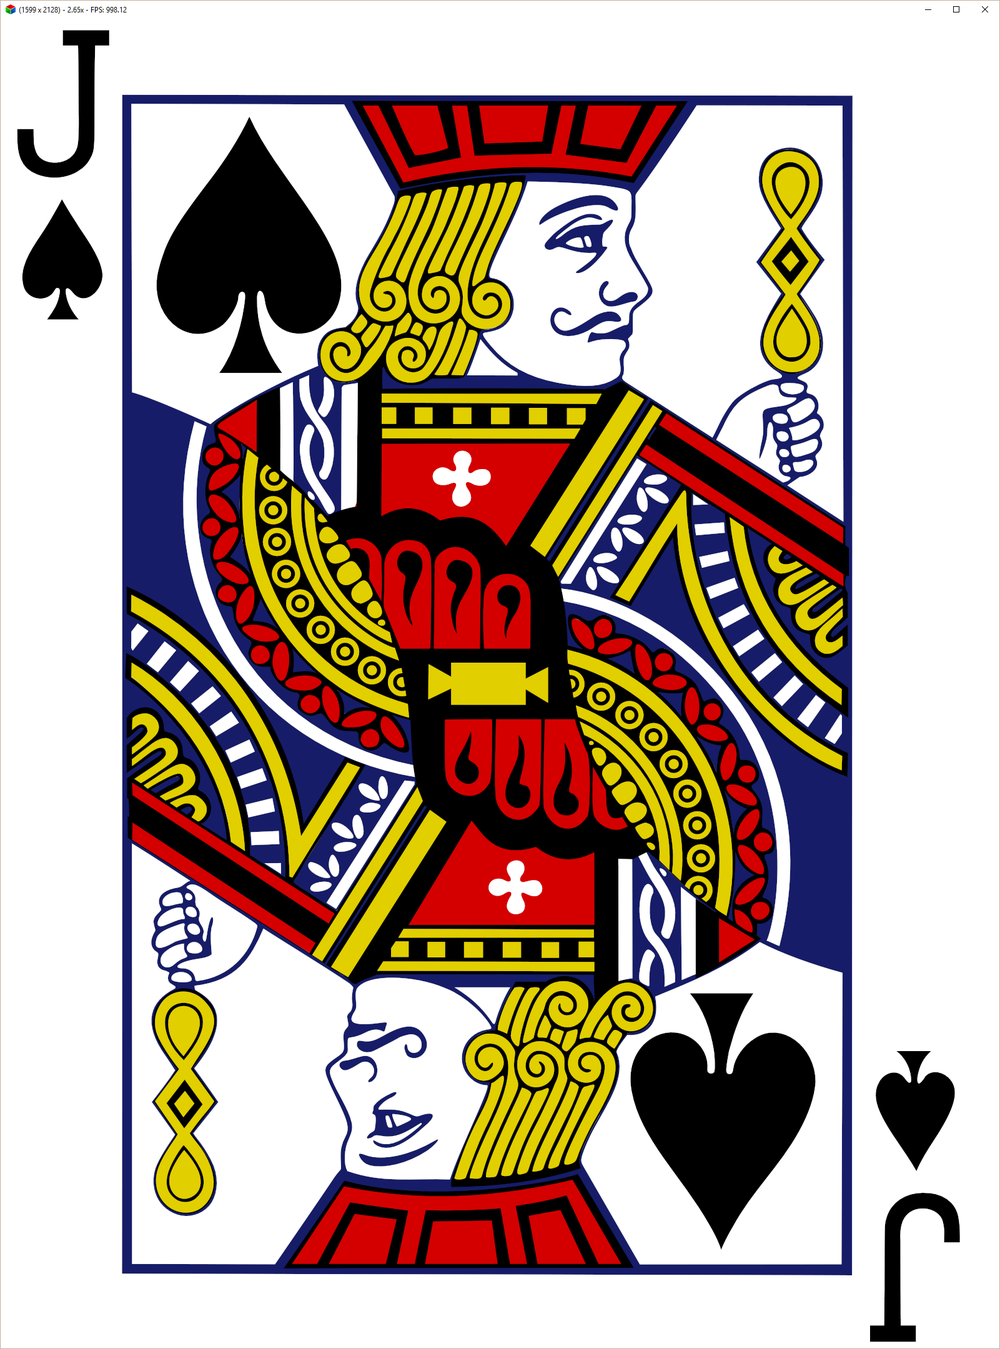 jack_of_spades.png